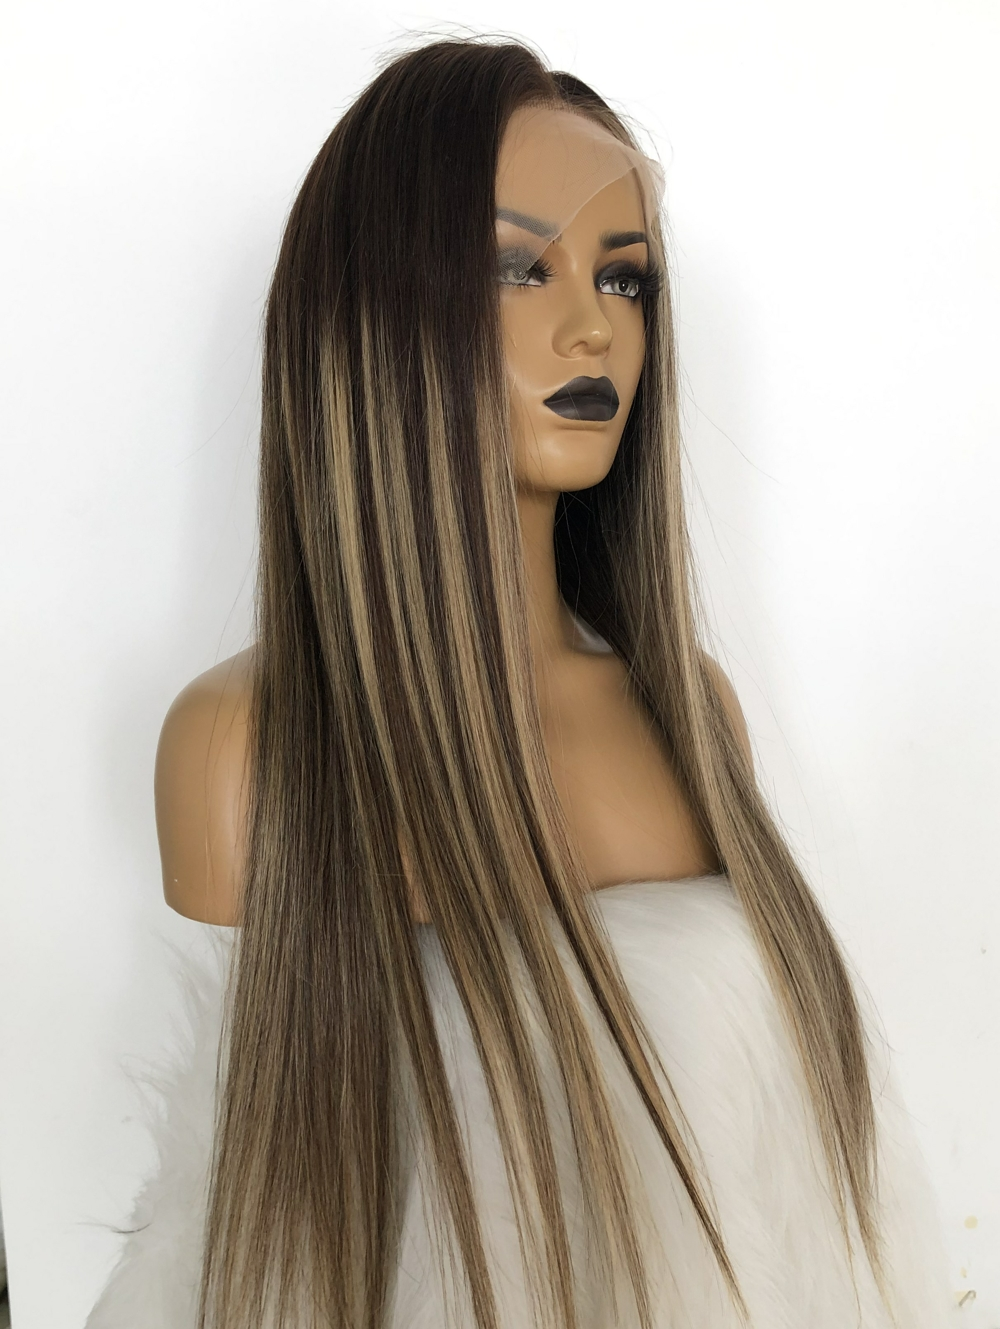 QueenKing hair Full Lace Wig 150% Density European Cami Color Balayage Ombre Wigs T4/4/24 Remy hair